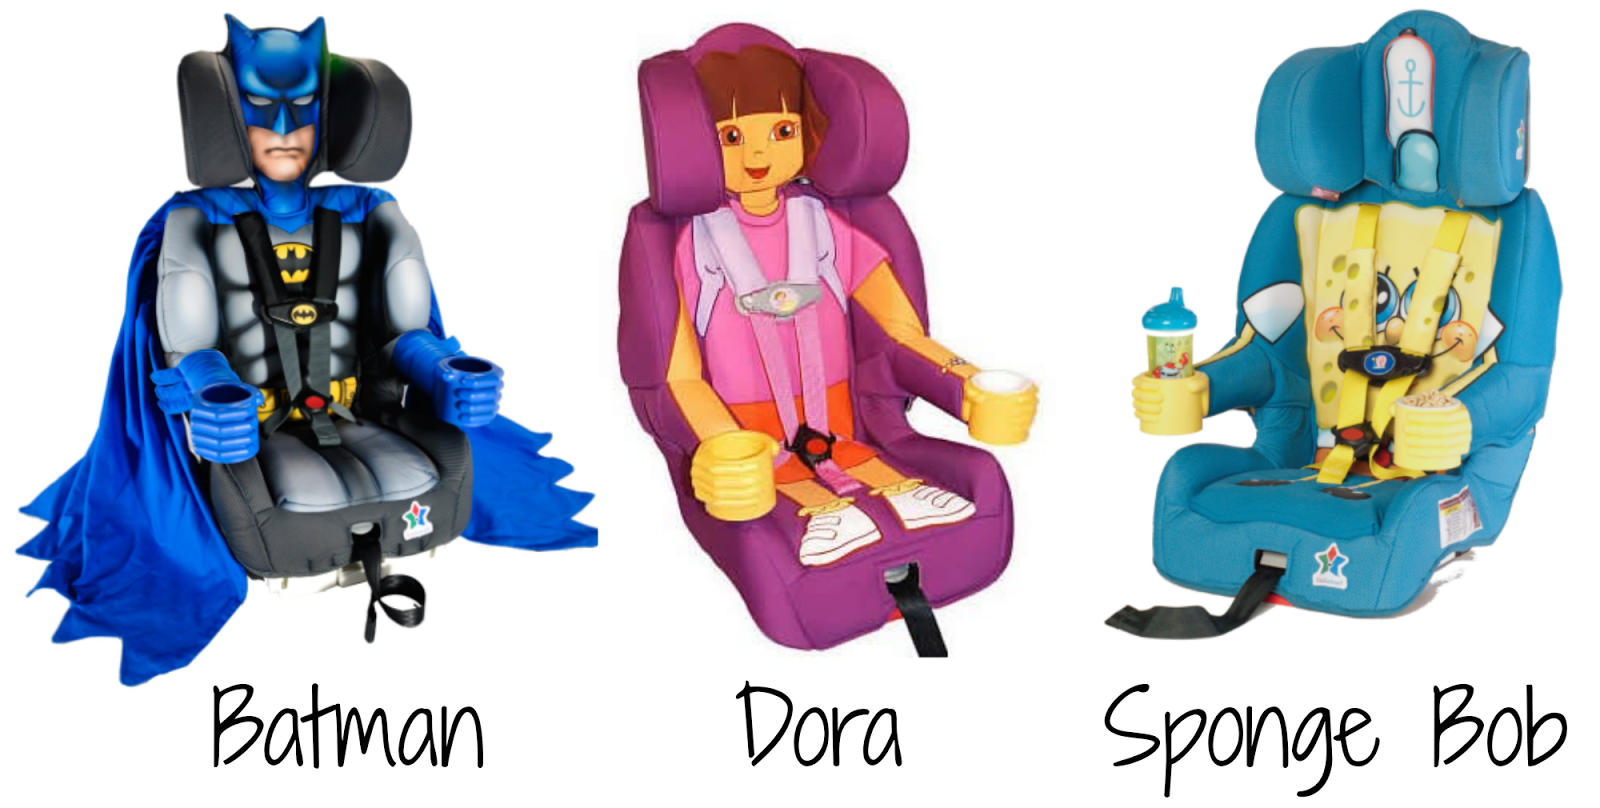 to purchase you can purchase your kidsembrace character toddler booster seat on the kidsembrace website for 129 149 depending on the car seat